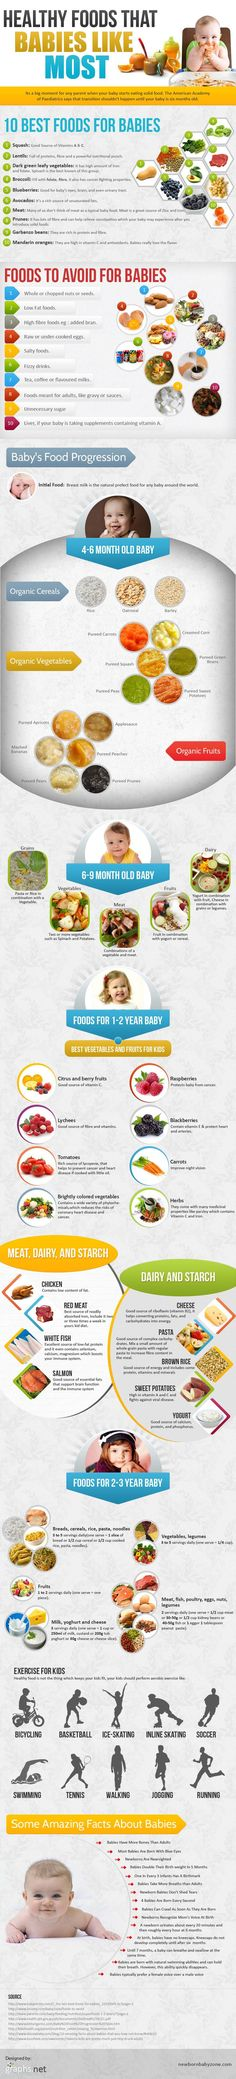 What Babies Can Eat Ages Newborn to 3 Years